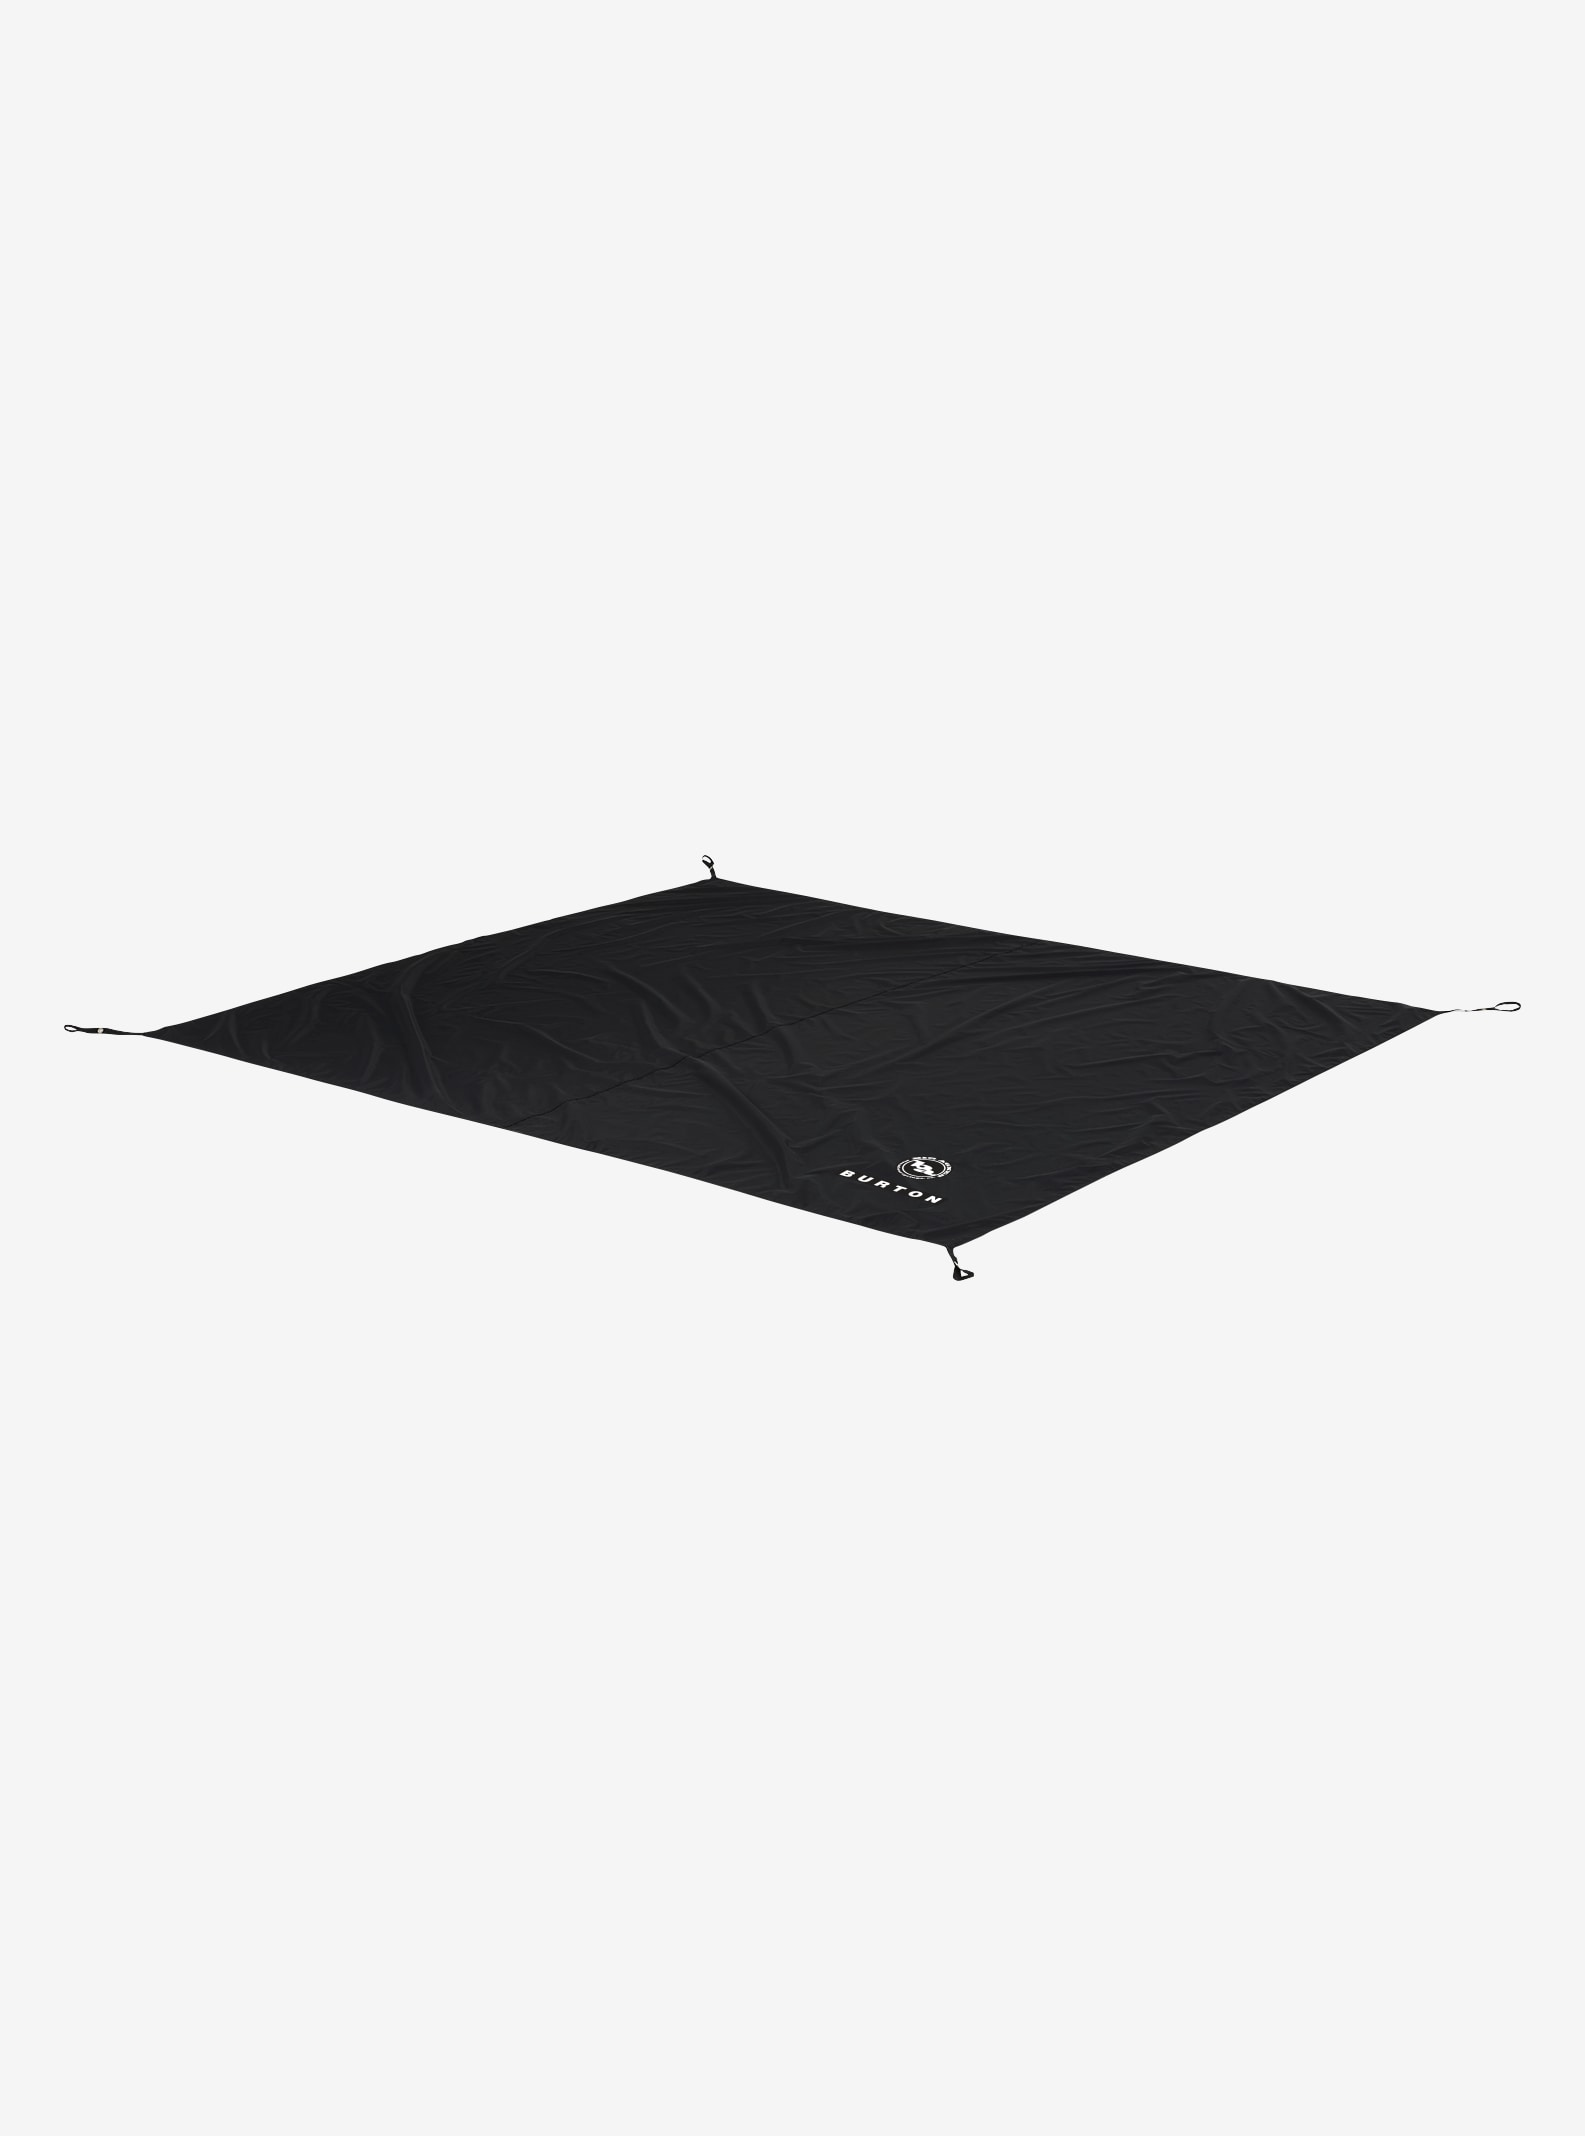 Rabbit Ears 6 - Tapis de sol affichage en True Black